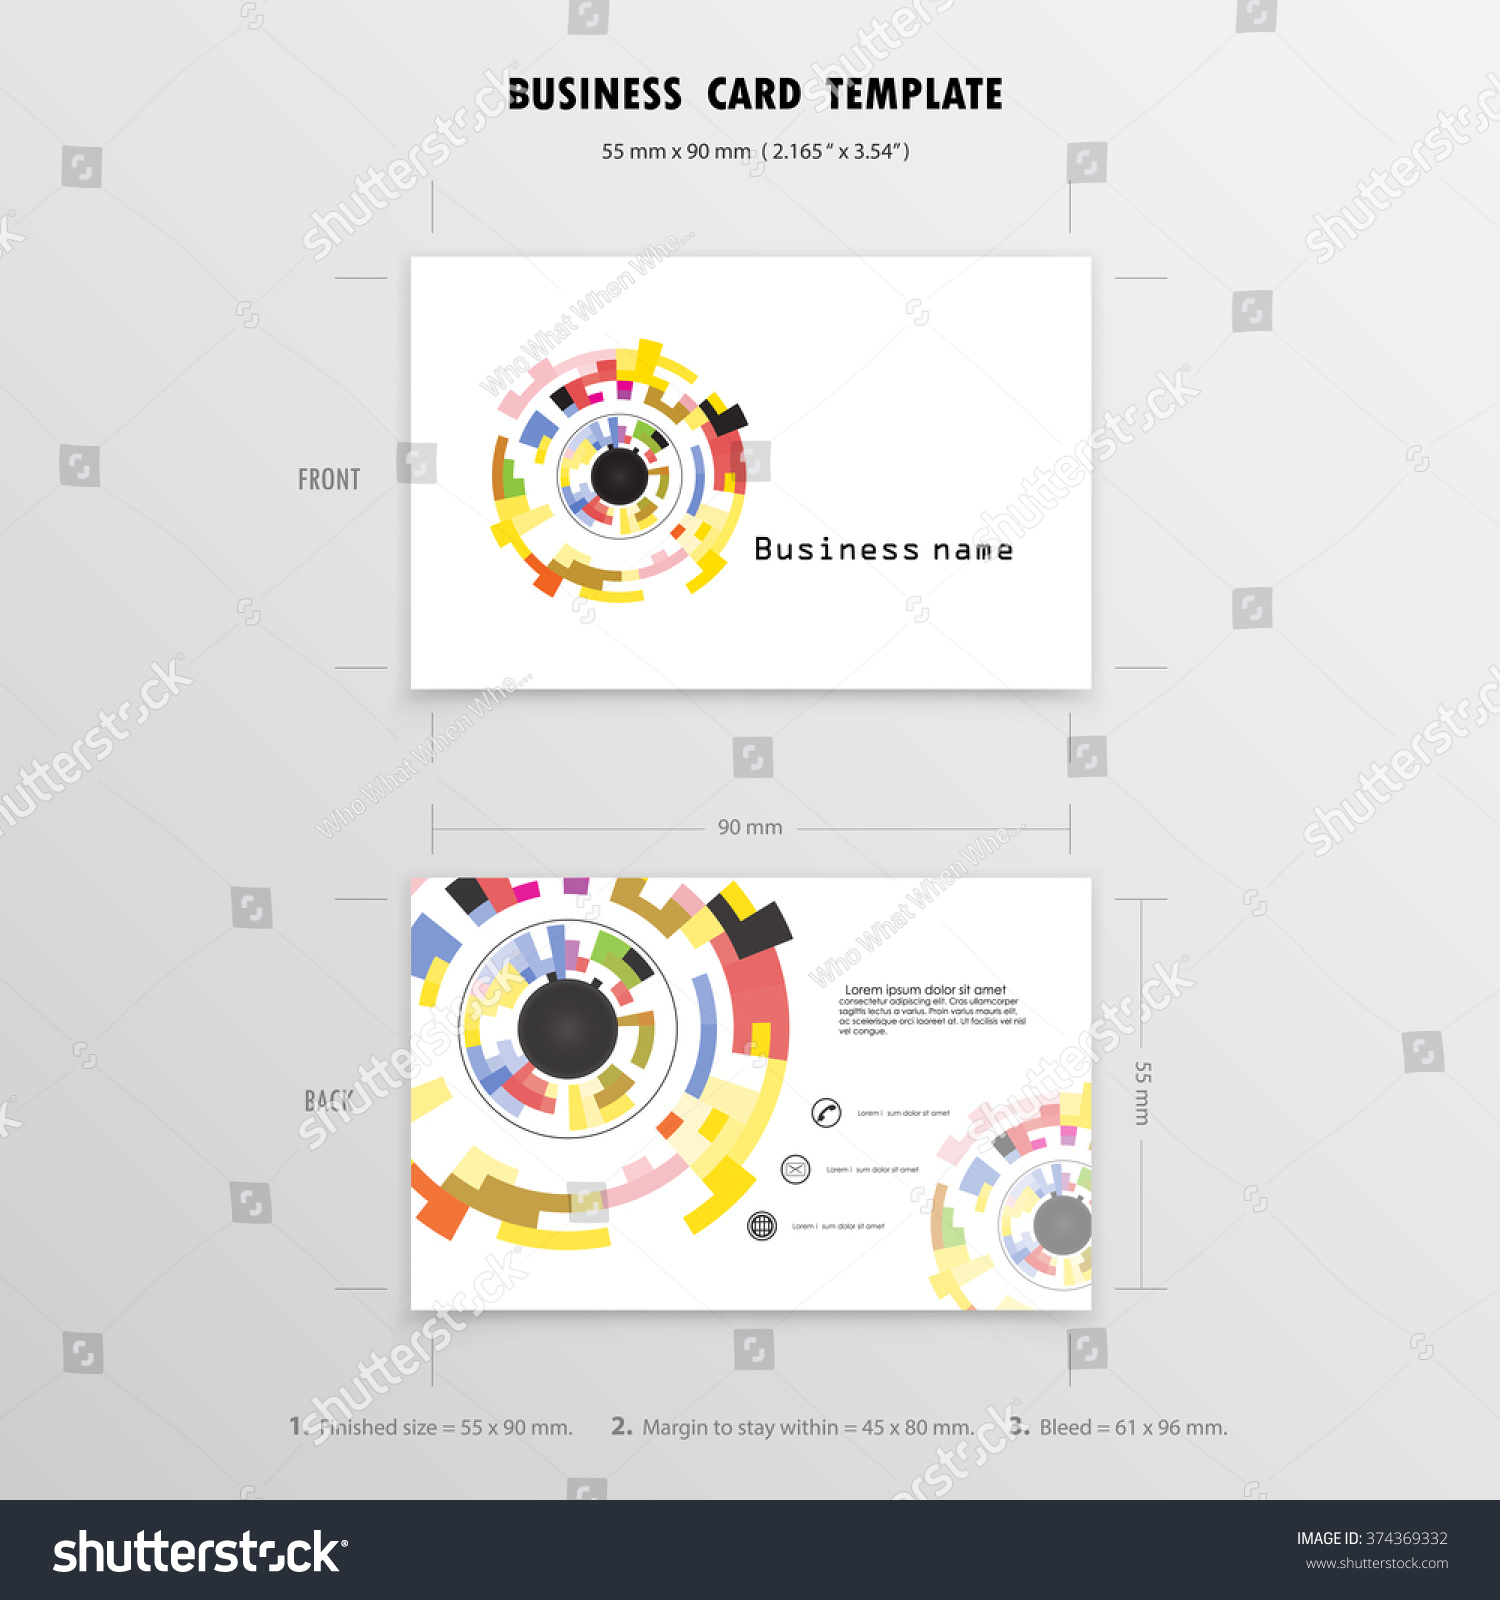 business card template 85mm x 54mm images card design and card